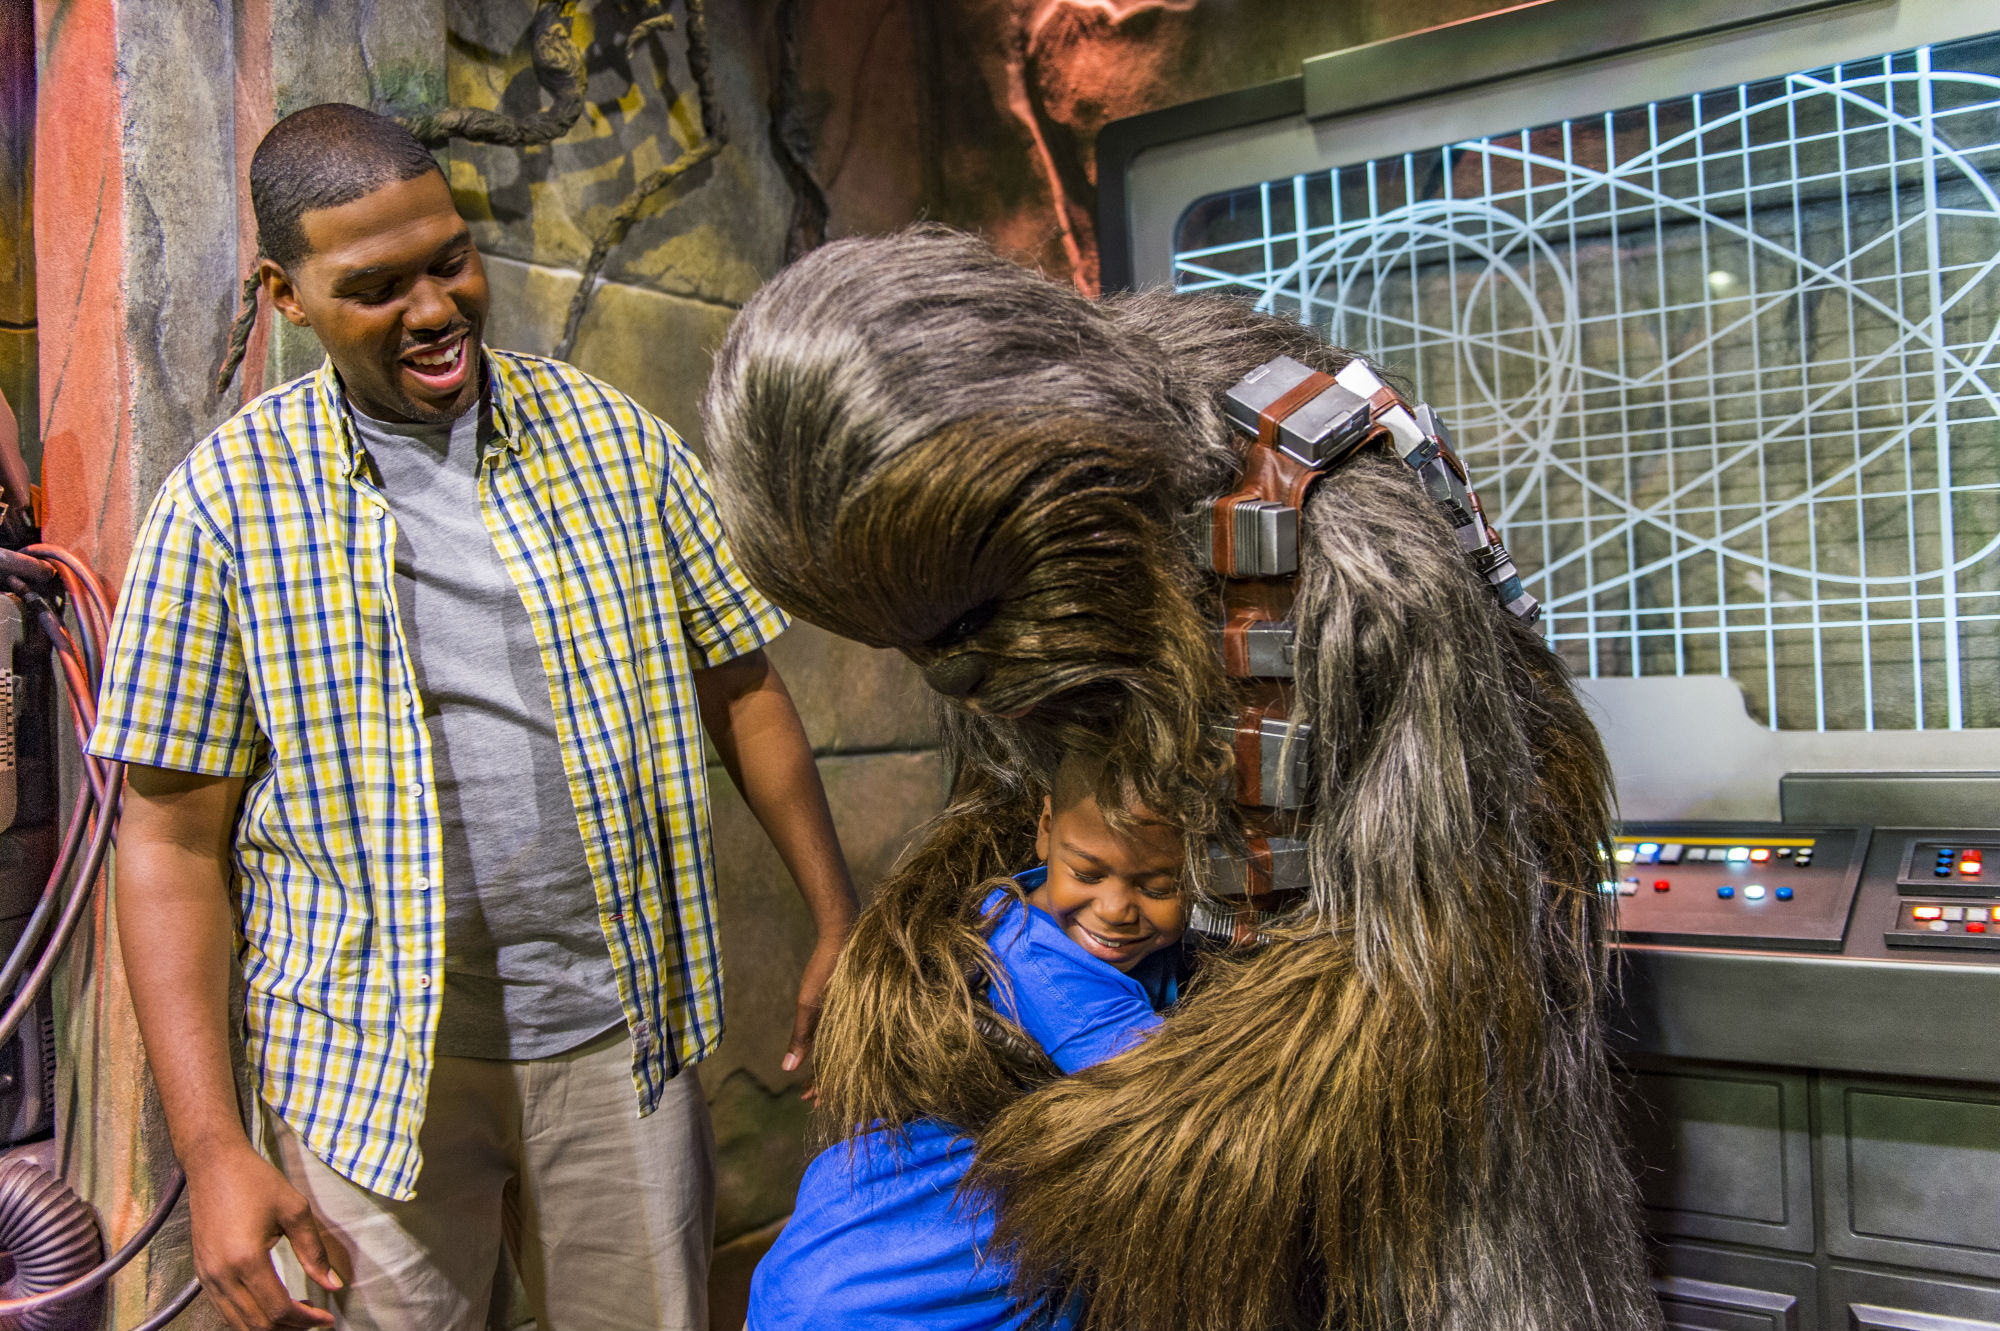 Meet iconic characters like Chewbacca at Star Wars: Galaxy's Edge is set to open in summer 2019 at Disneyland® Resort.